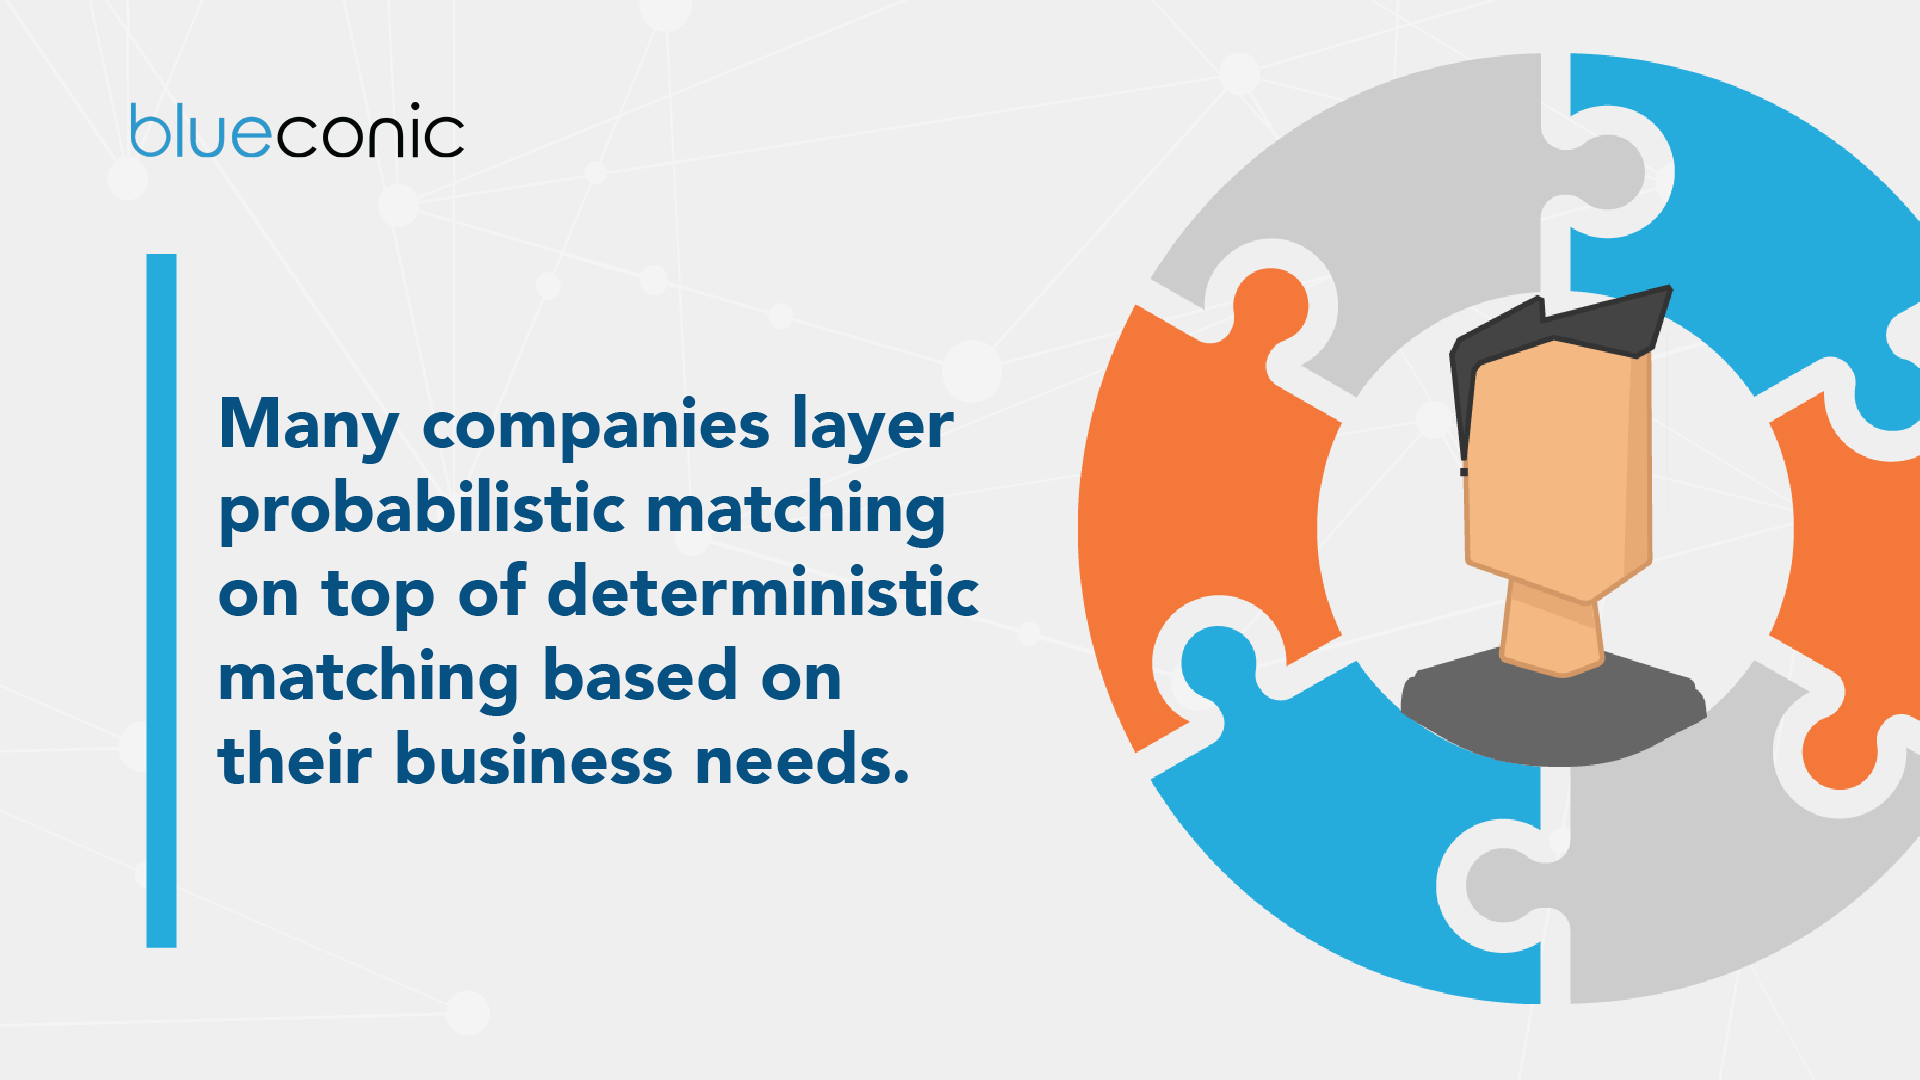 Many companies layer probabilistic matching on top of deterministic matching based on their business needs.